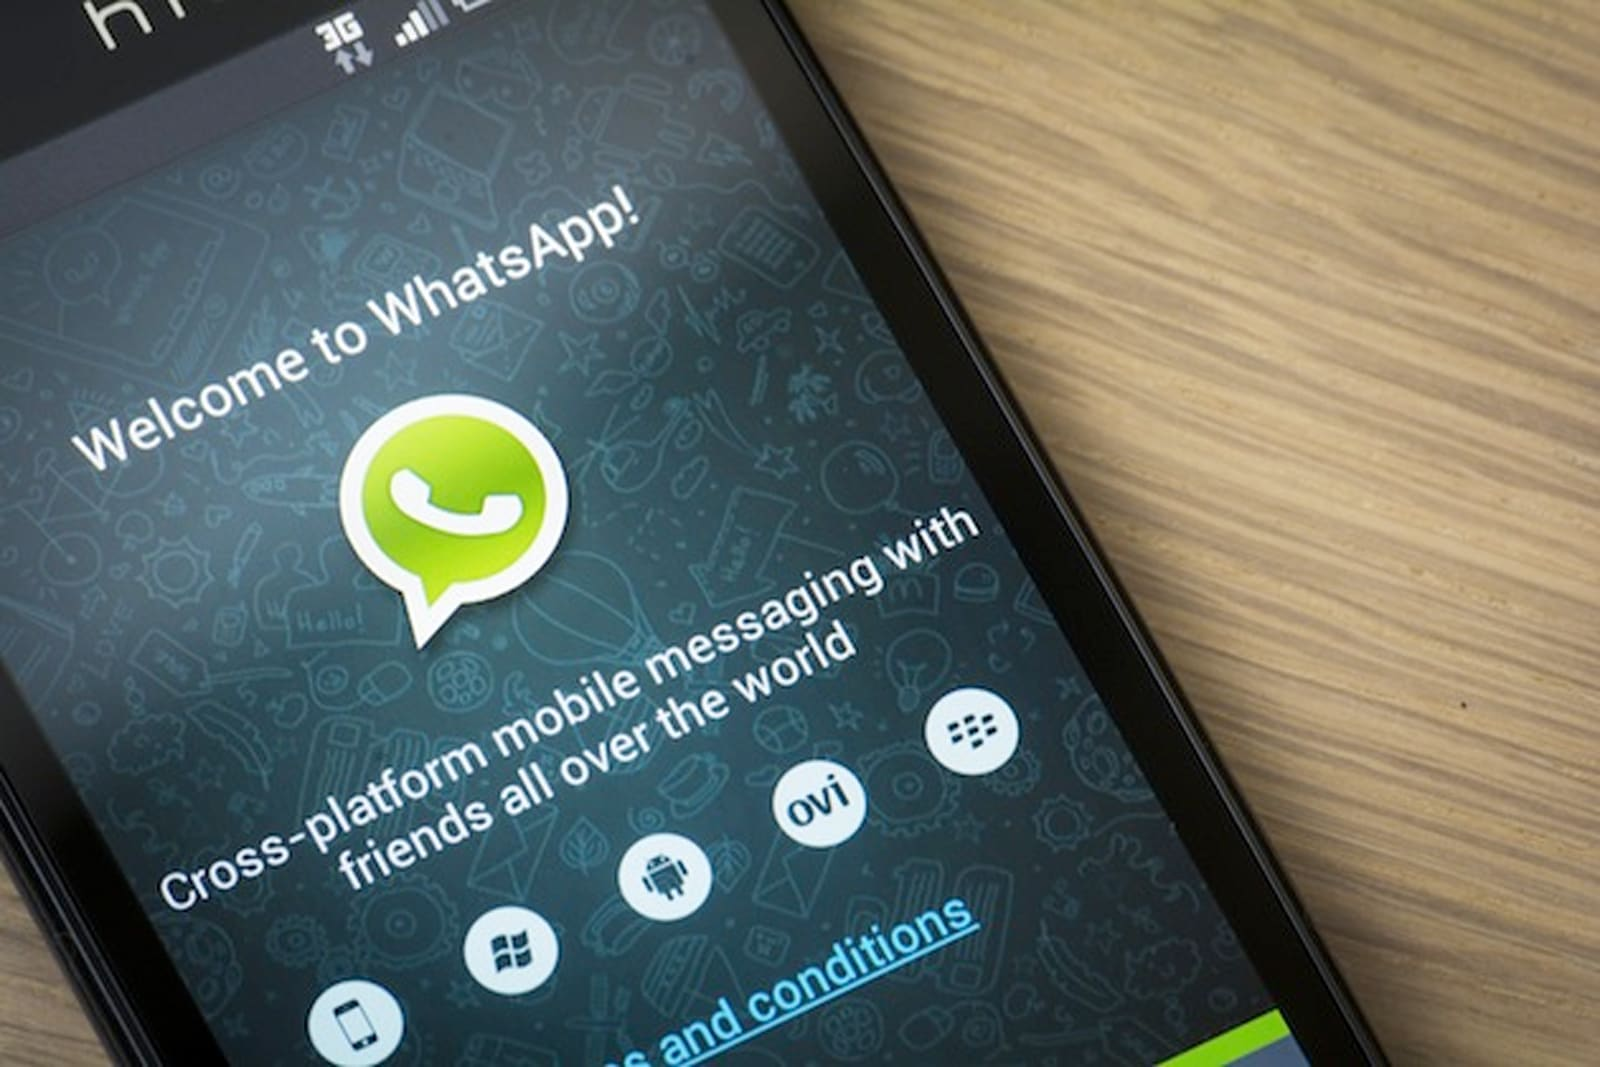 HILVERSUM, NETHERLANDS - FEBRUARY 2014, 2014: WhatsApp Messenger is a proprietary, cross-platform instant messaging subscription service for smartphones with Internet access founded in 2009.; Shutterstock ID 177177047; PO: aol; Job: production; Client: drone